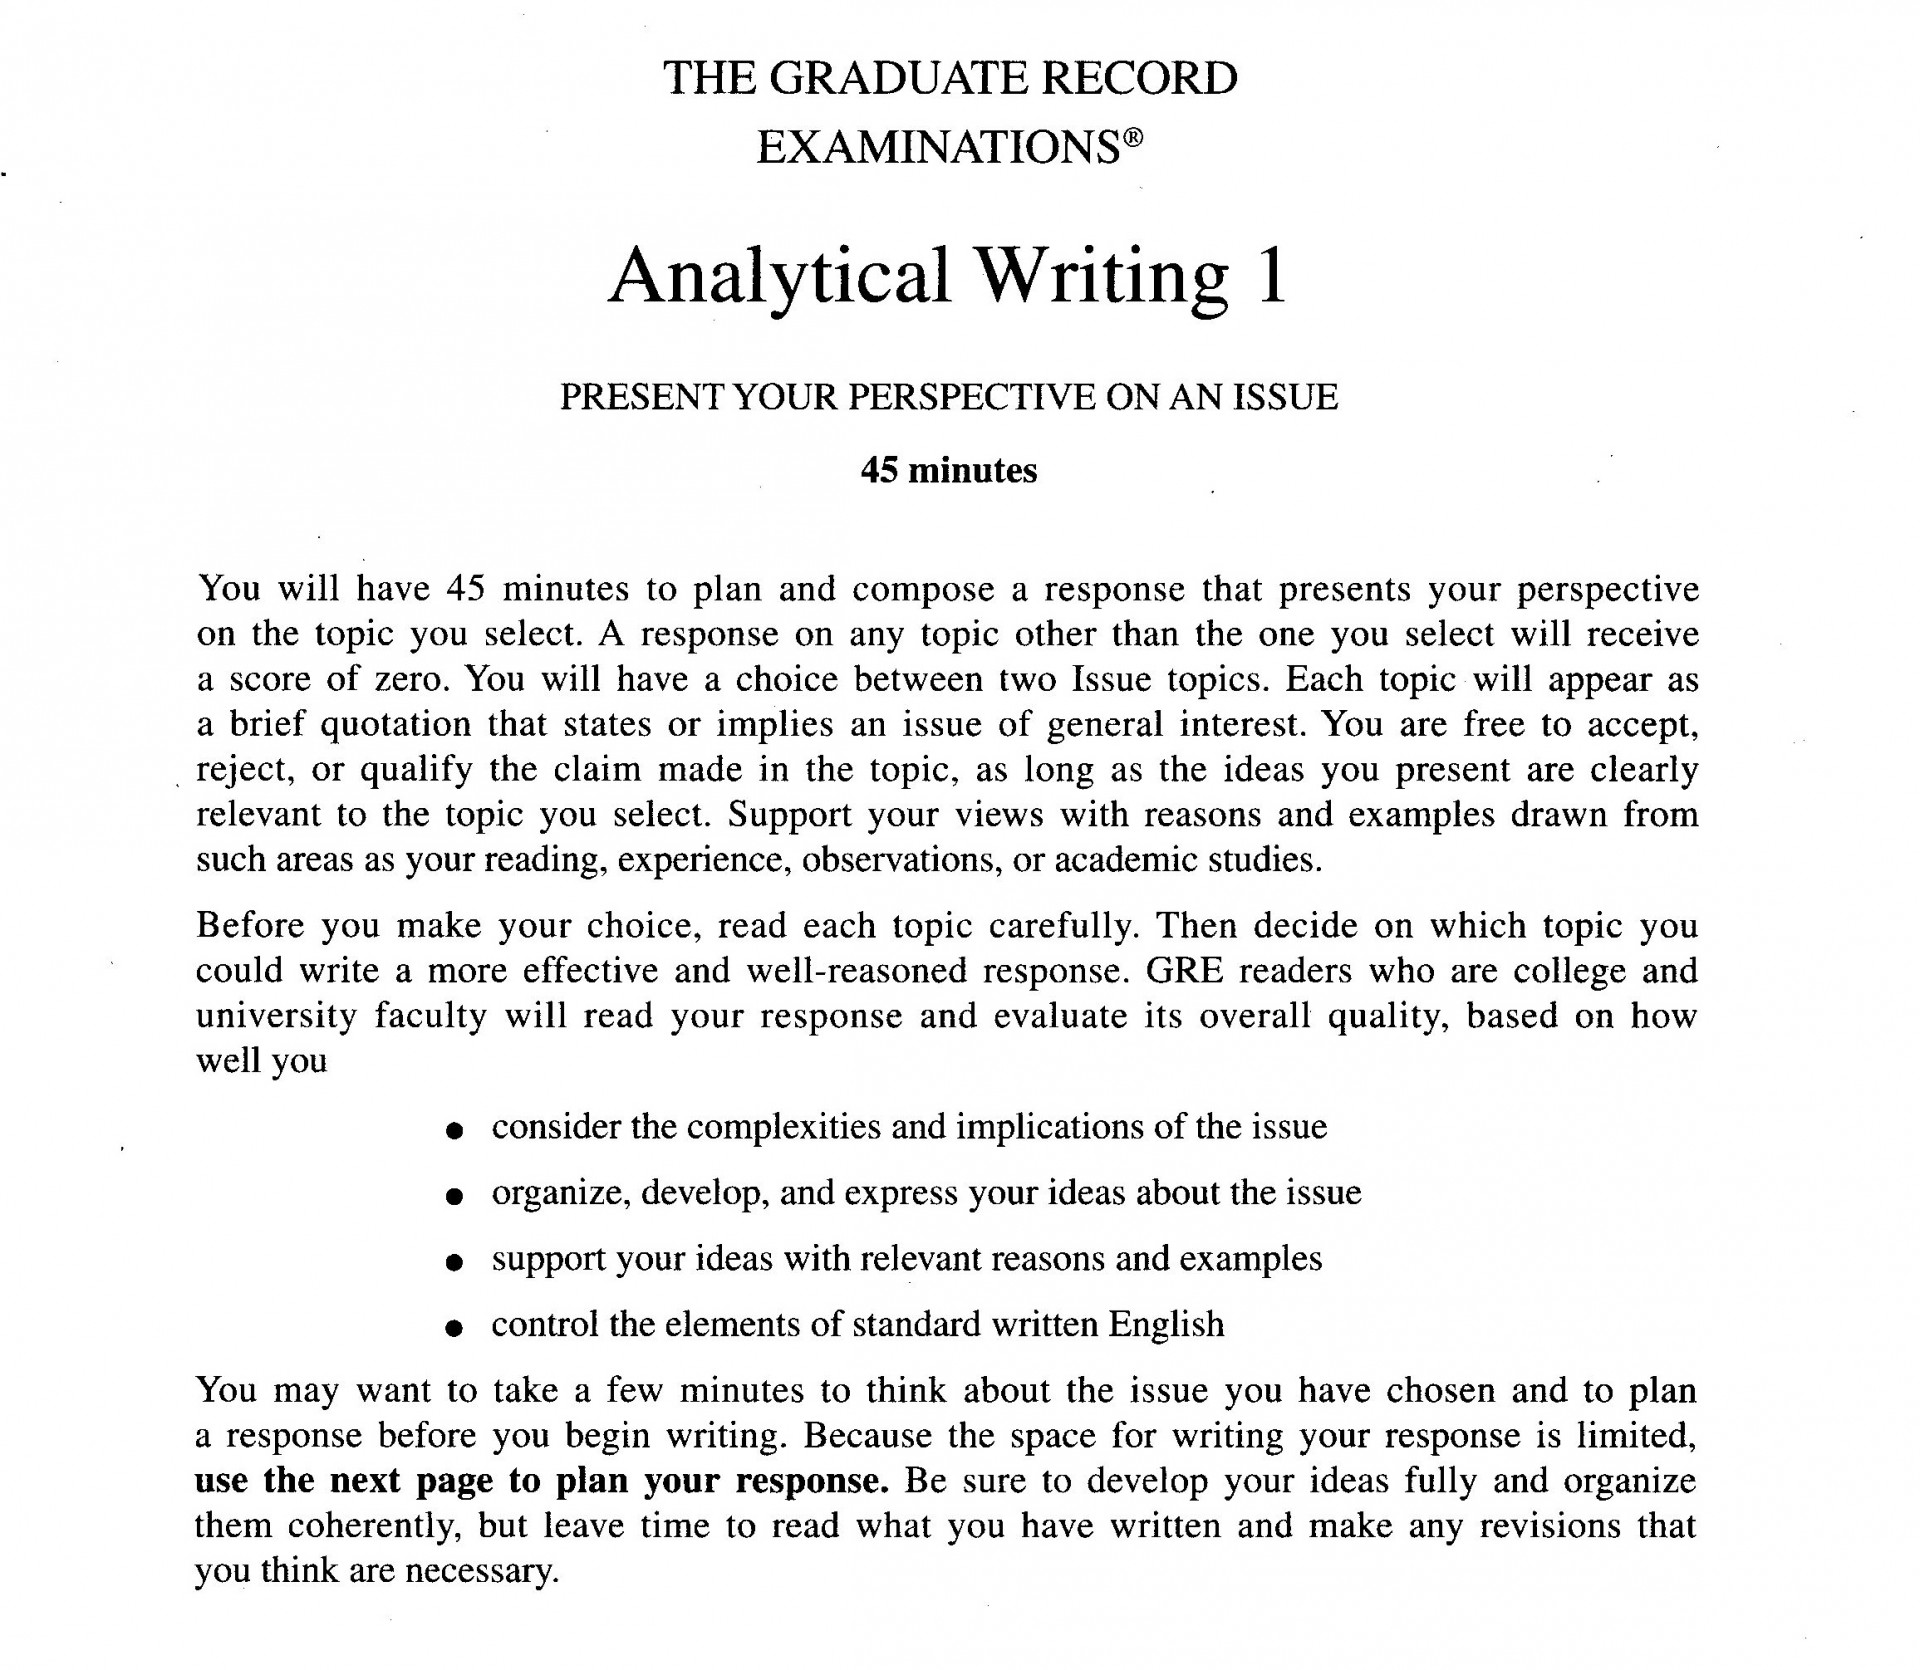 024 Essay Example Analytical20writing20issue20task20directions20for20gre201 Cheap Top Writing Service Reviews 2017 Canada 1920